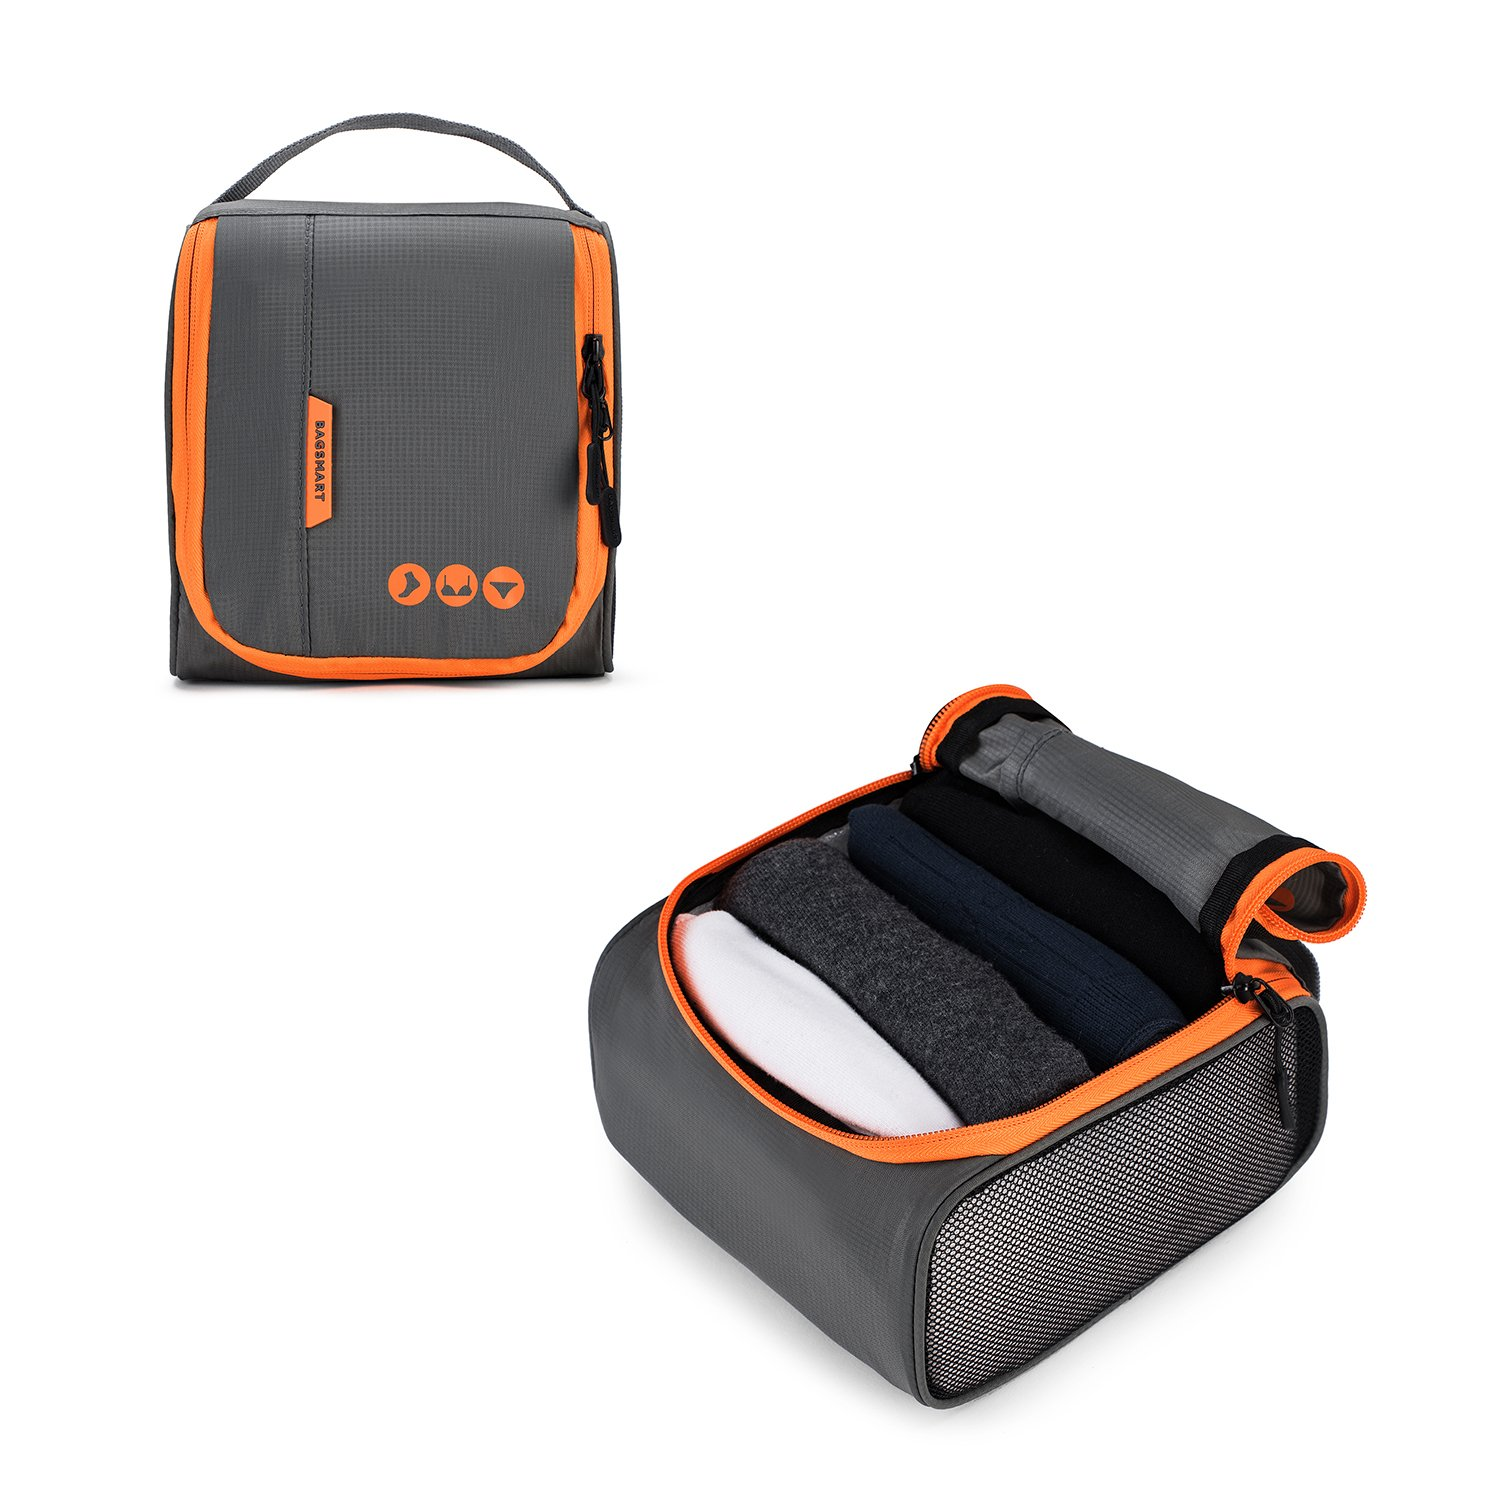 BAGSMART 6 Sets Packing Cubes 3 Sizes Portable Travel Luggage Organizer for Carry-on Accessories by BAGSMART (Image #6)